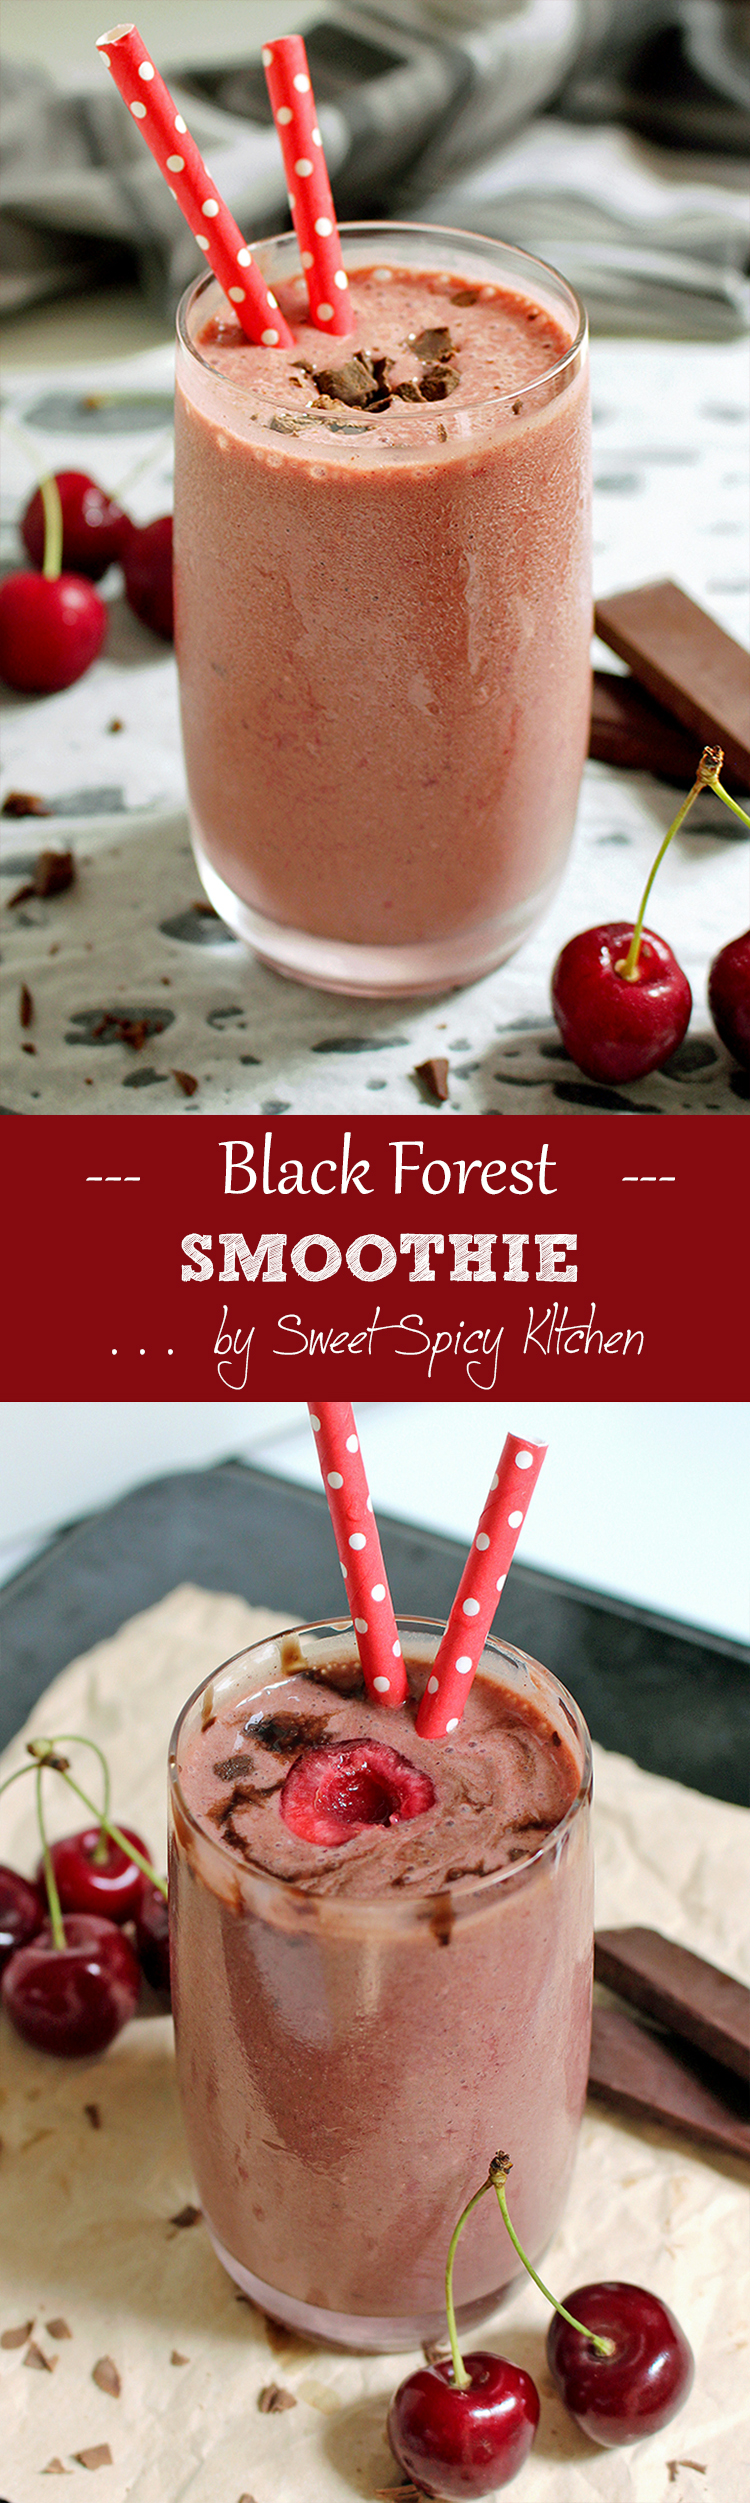 IMG_2 Black Forest Smoothie